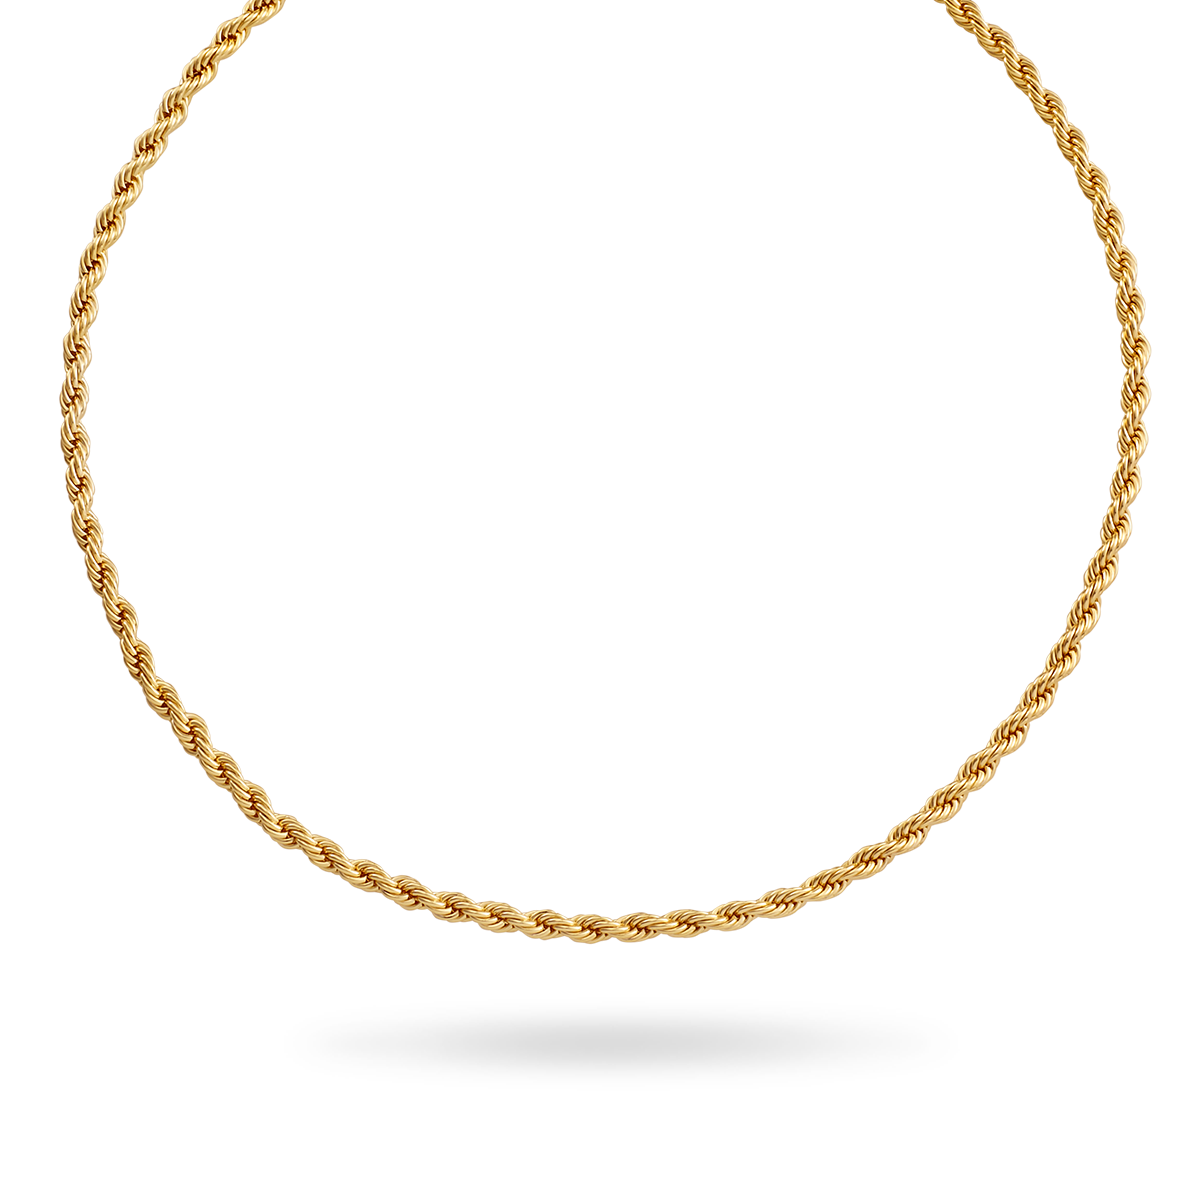 14K Gold Rope Chain 2mm